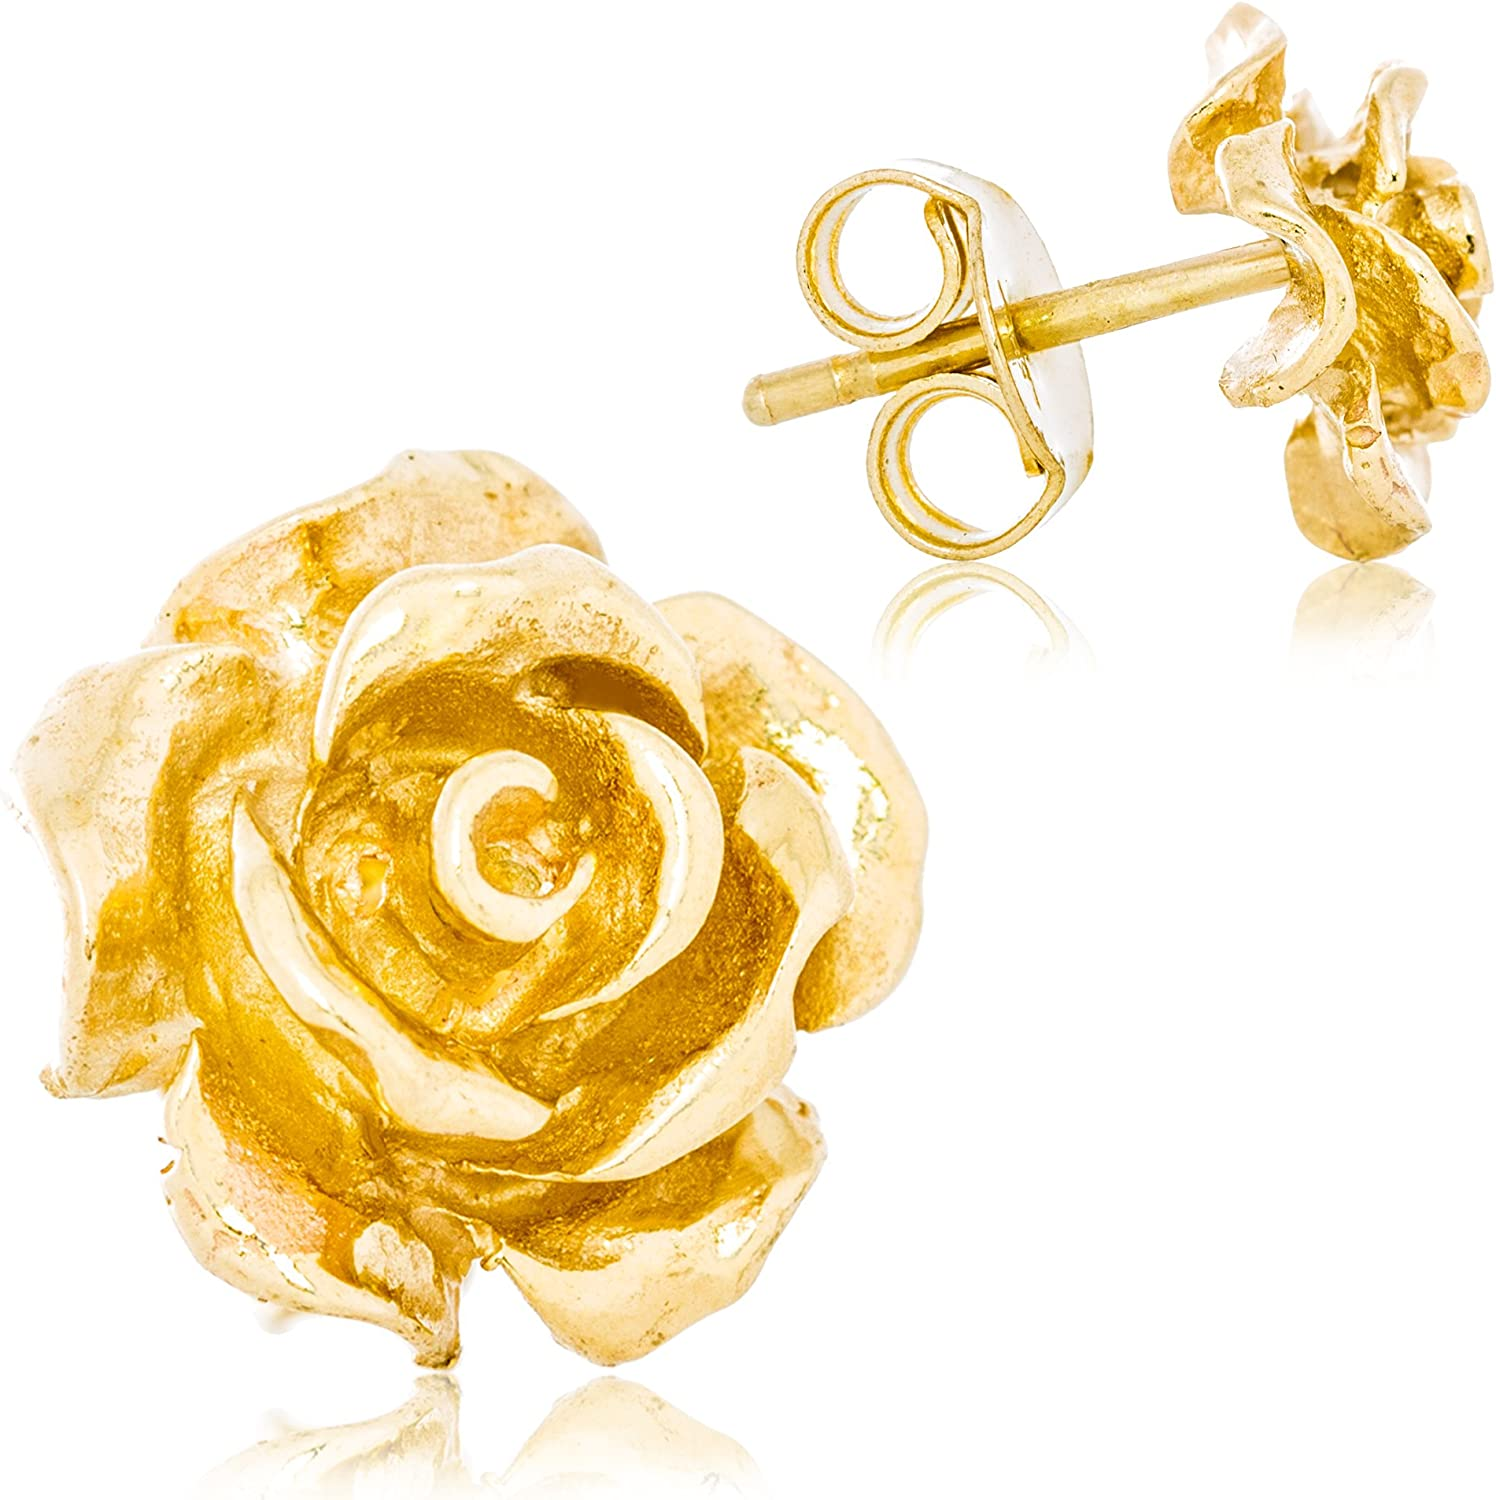 Solid 14K Yellow Gold Rose Flower Stud Earrings Handcrafted style 3/8 inch with Post and Friction Back | 2.5g